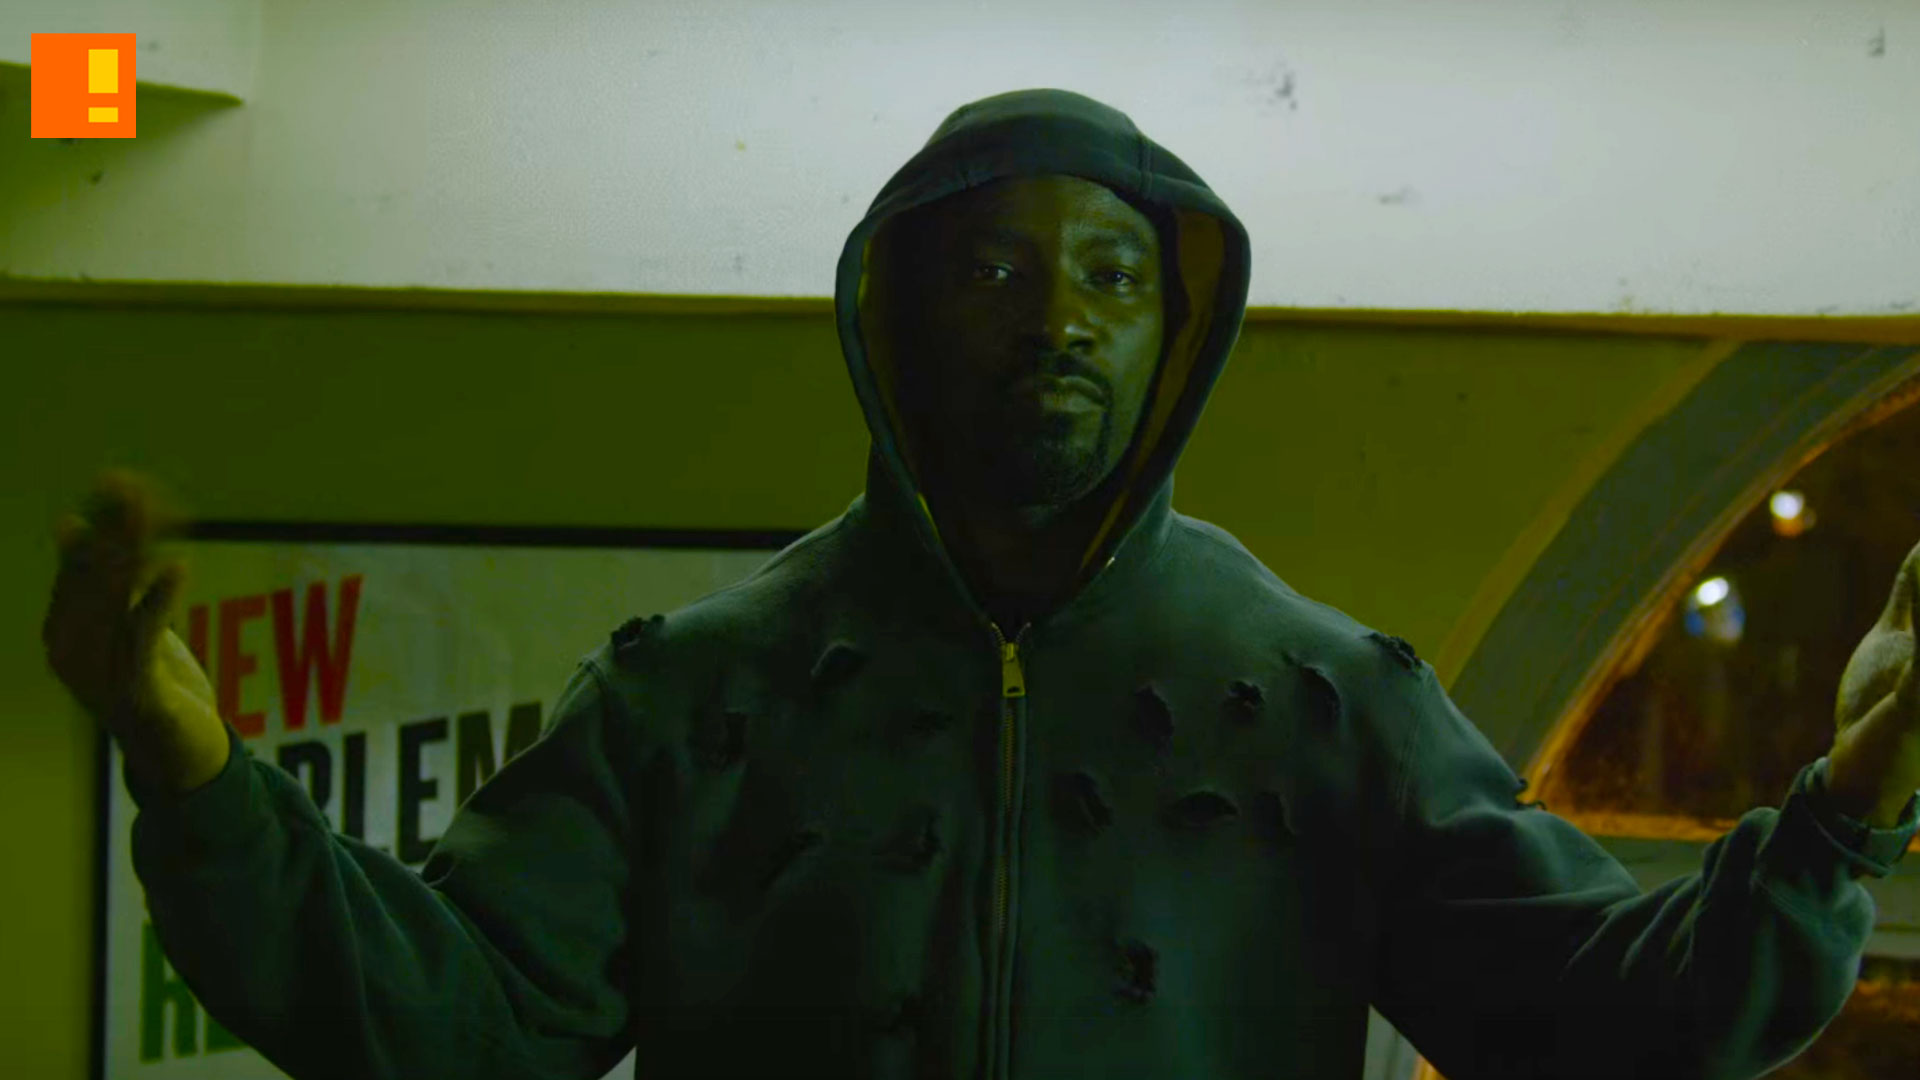 luke cage, sdcc, trailer, teaser, mike colter, marvel,netflix, the action pixel, @theactionpixel